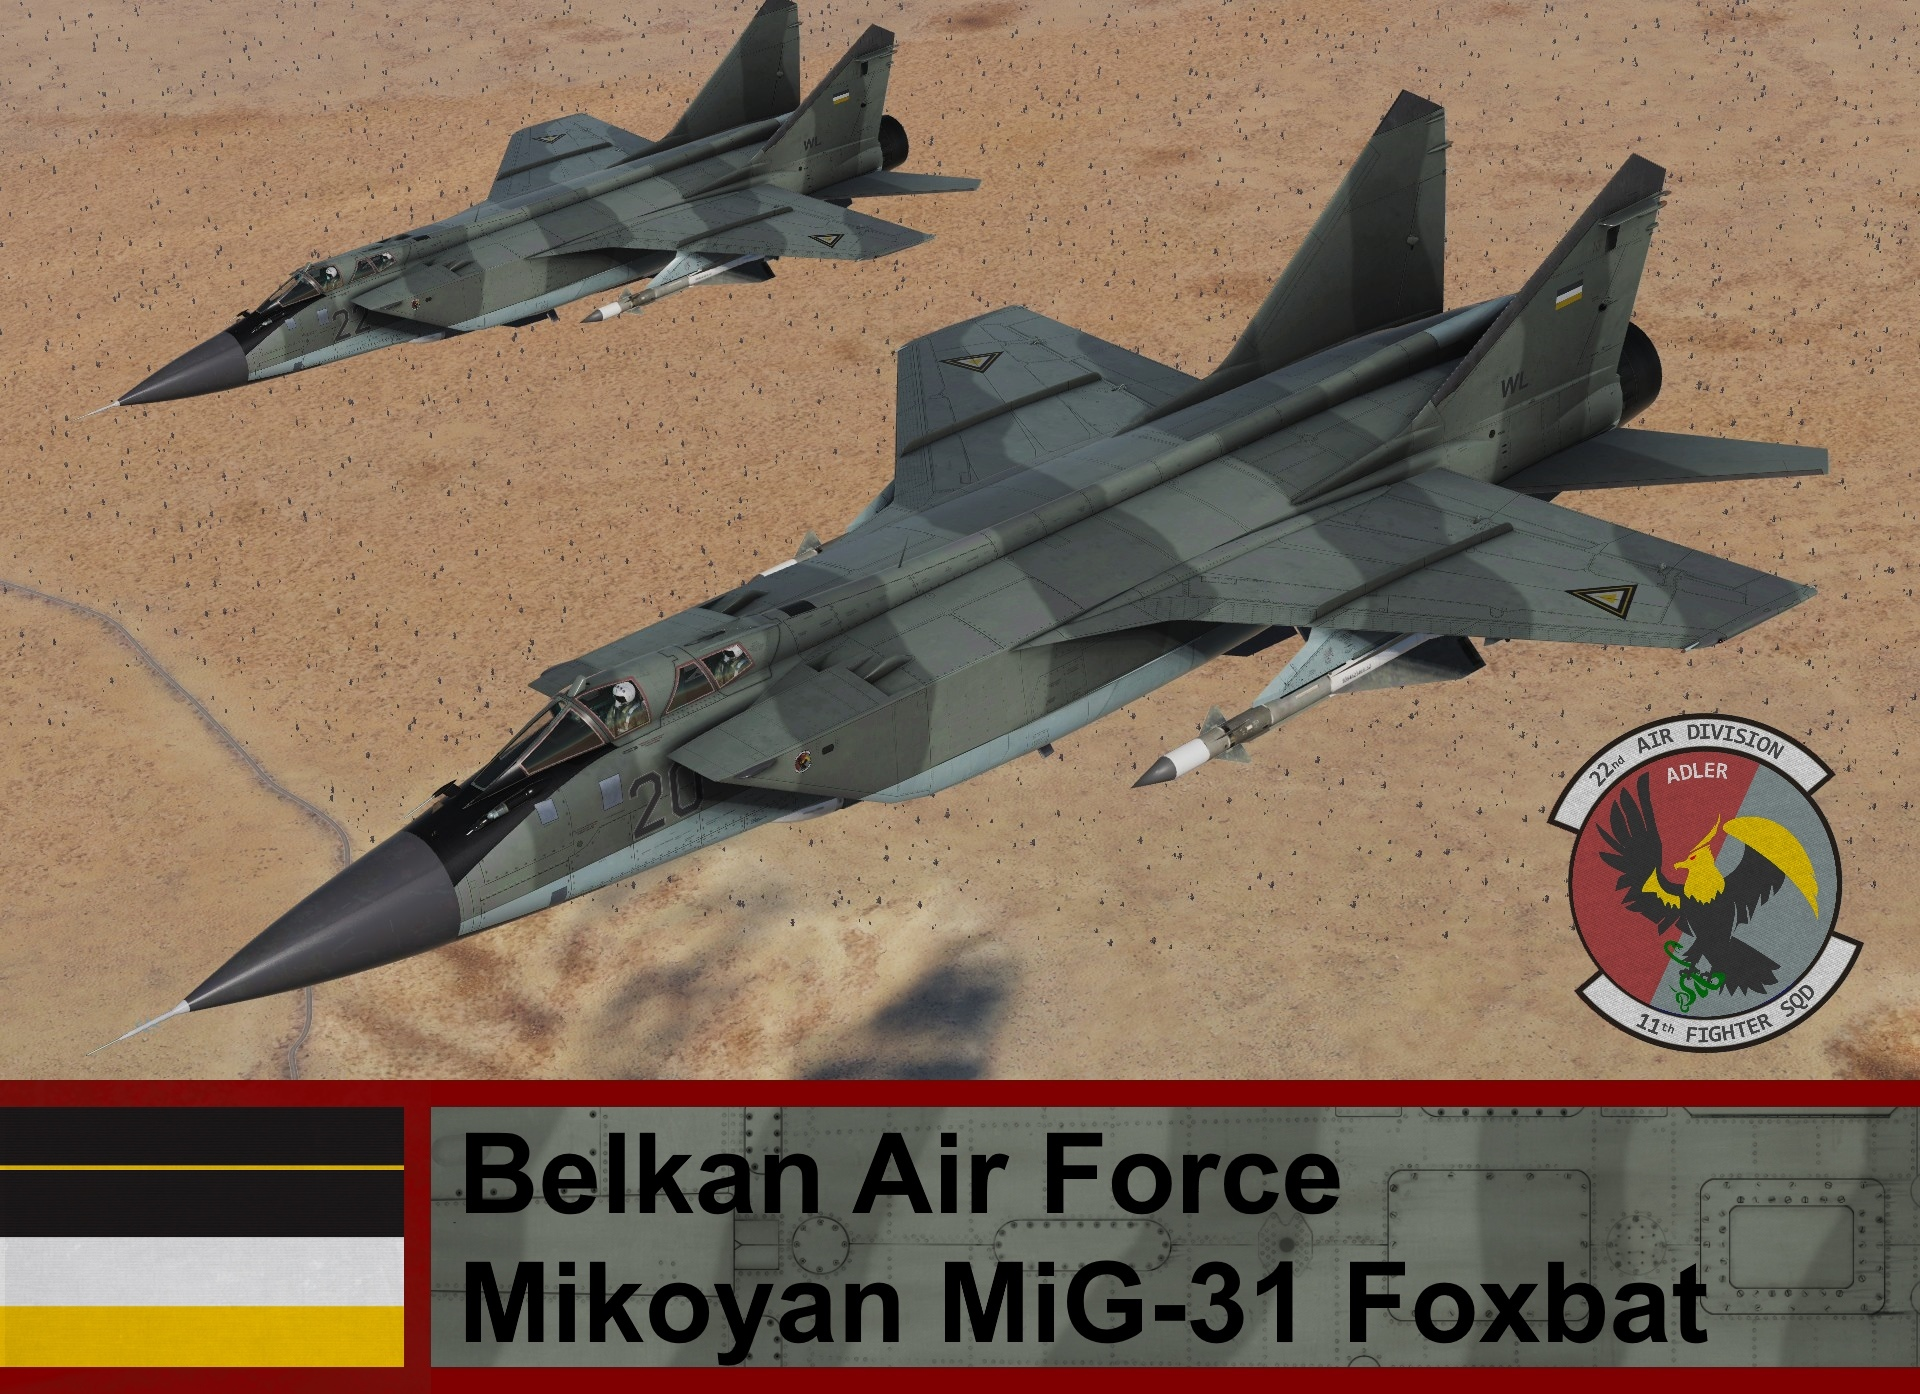 Belkan Air Force Mikoyan MiG-31 Foxbat - Ace Combat Zero (11th TFS)